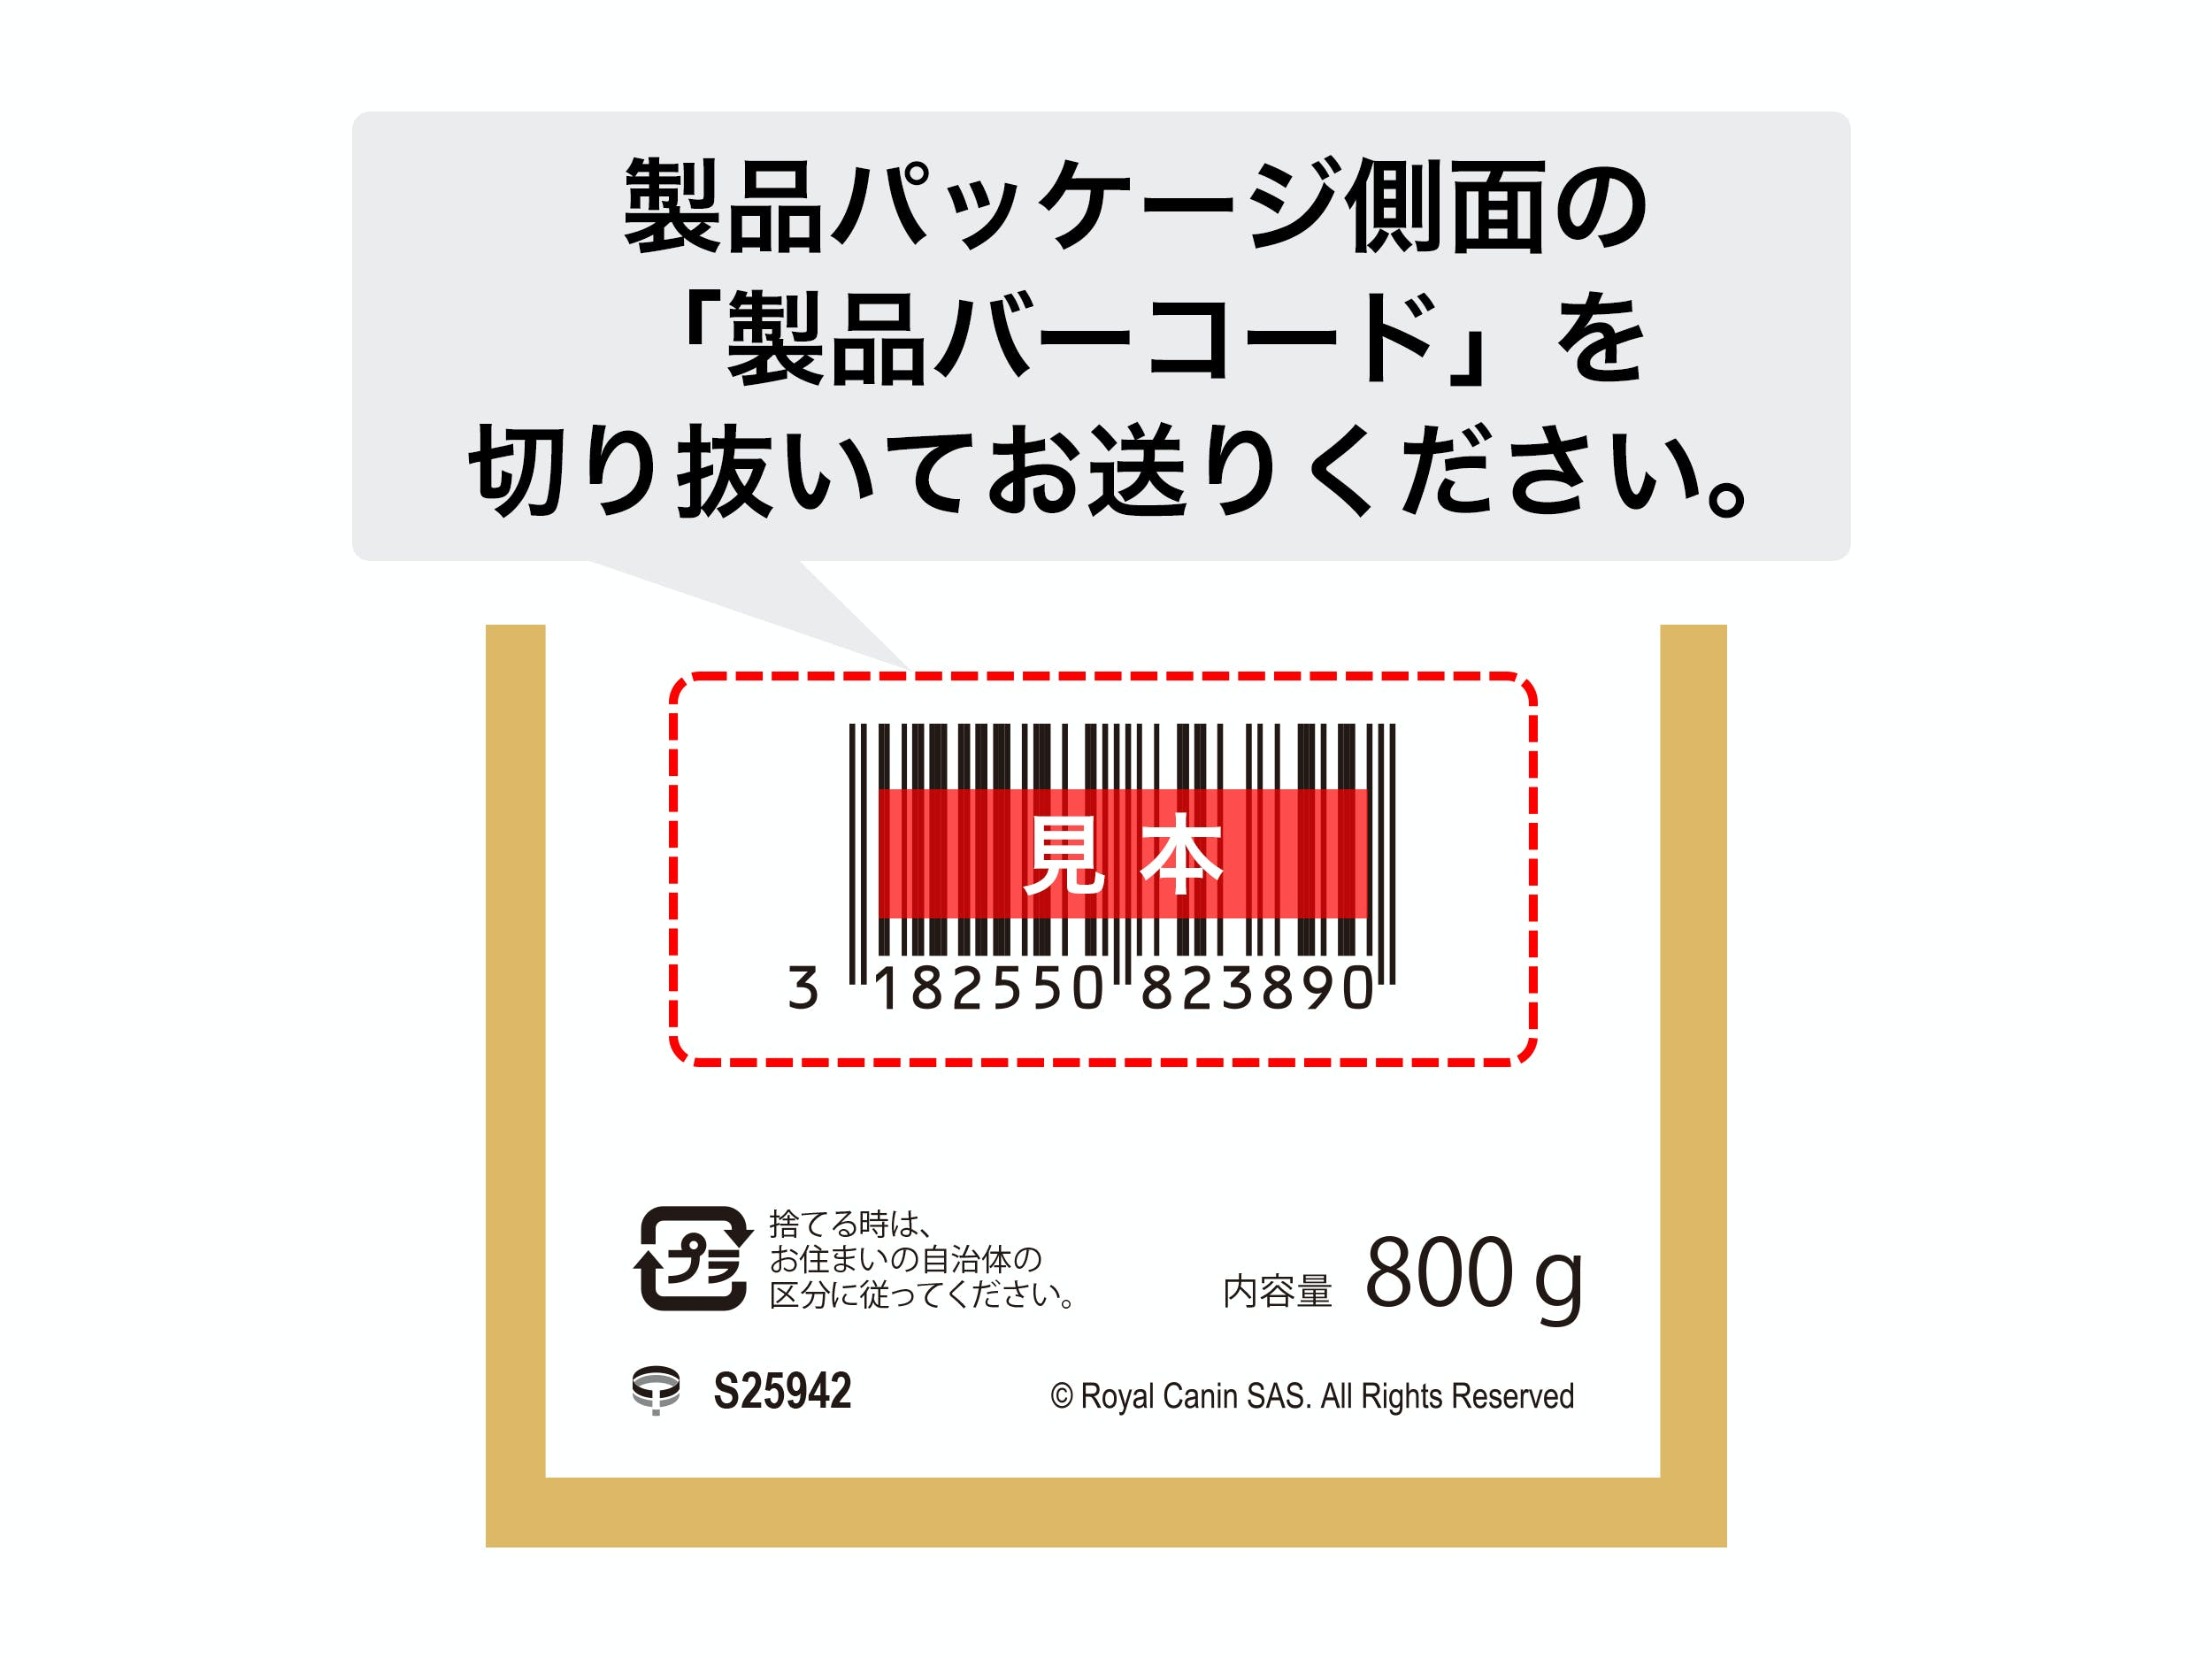 SPT guaranteed program application barcode